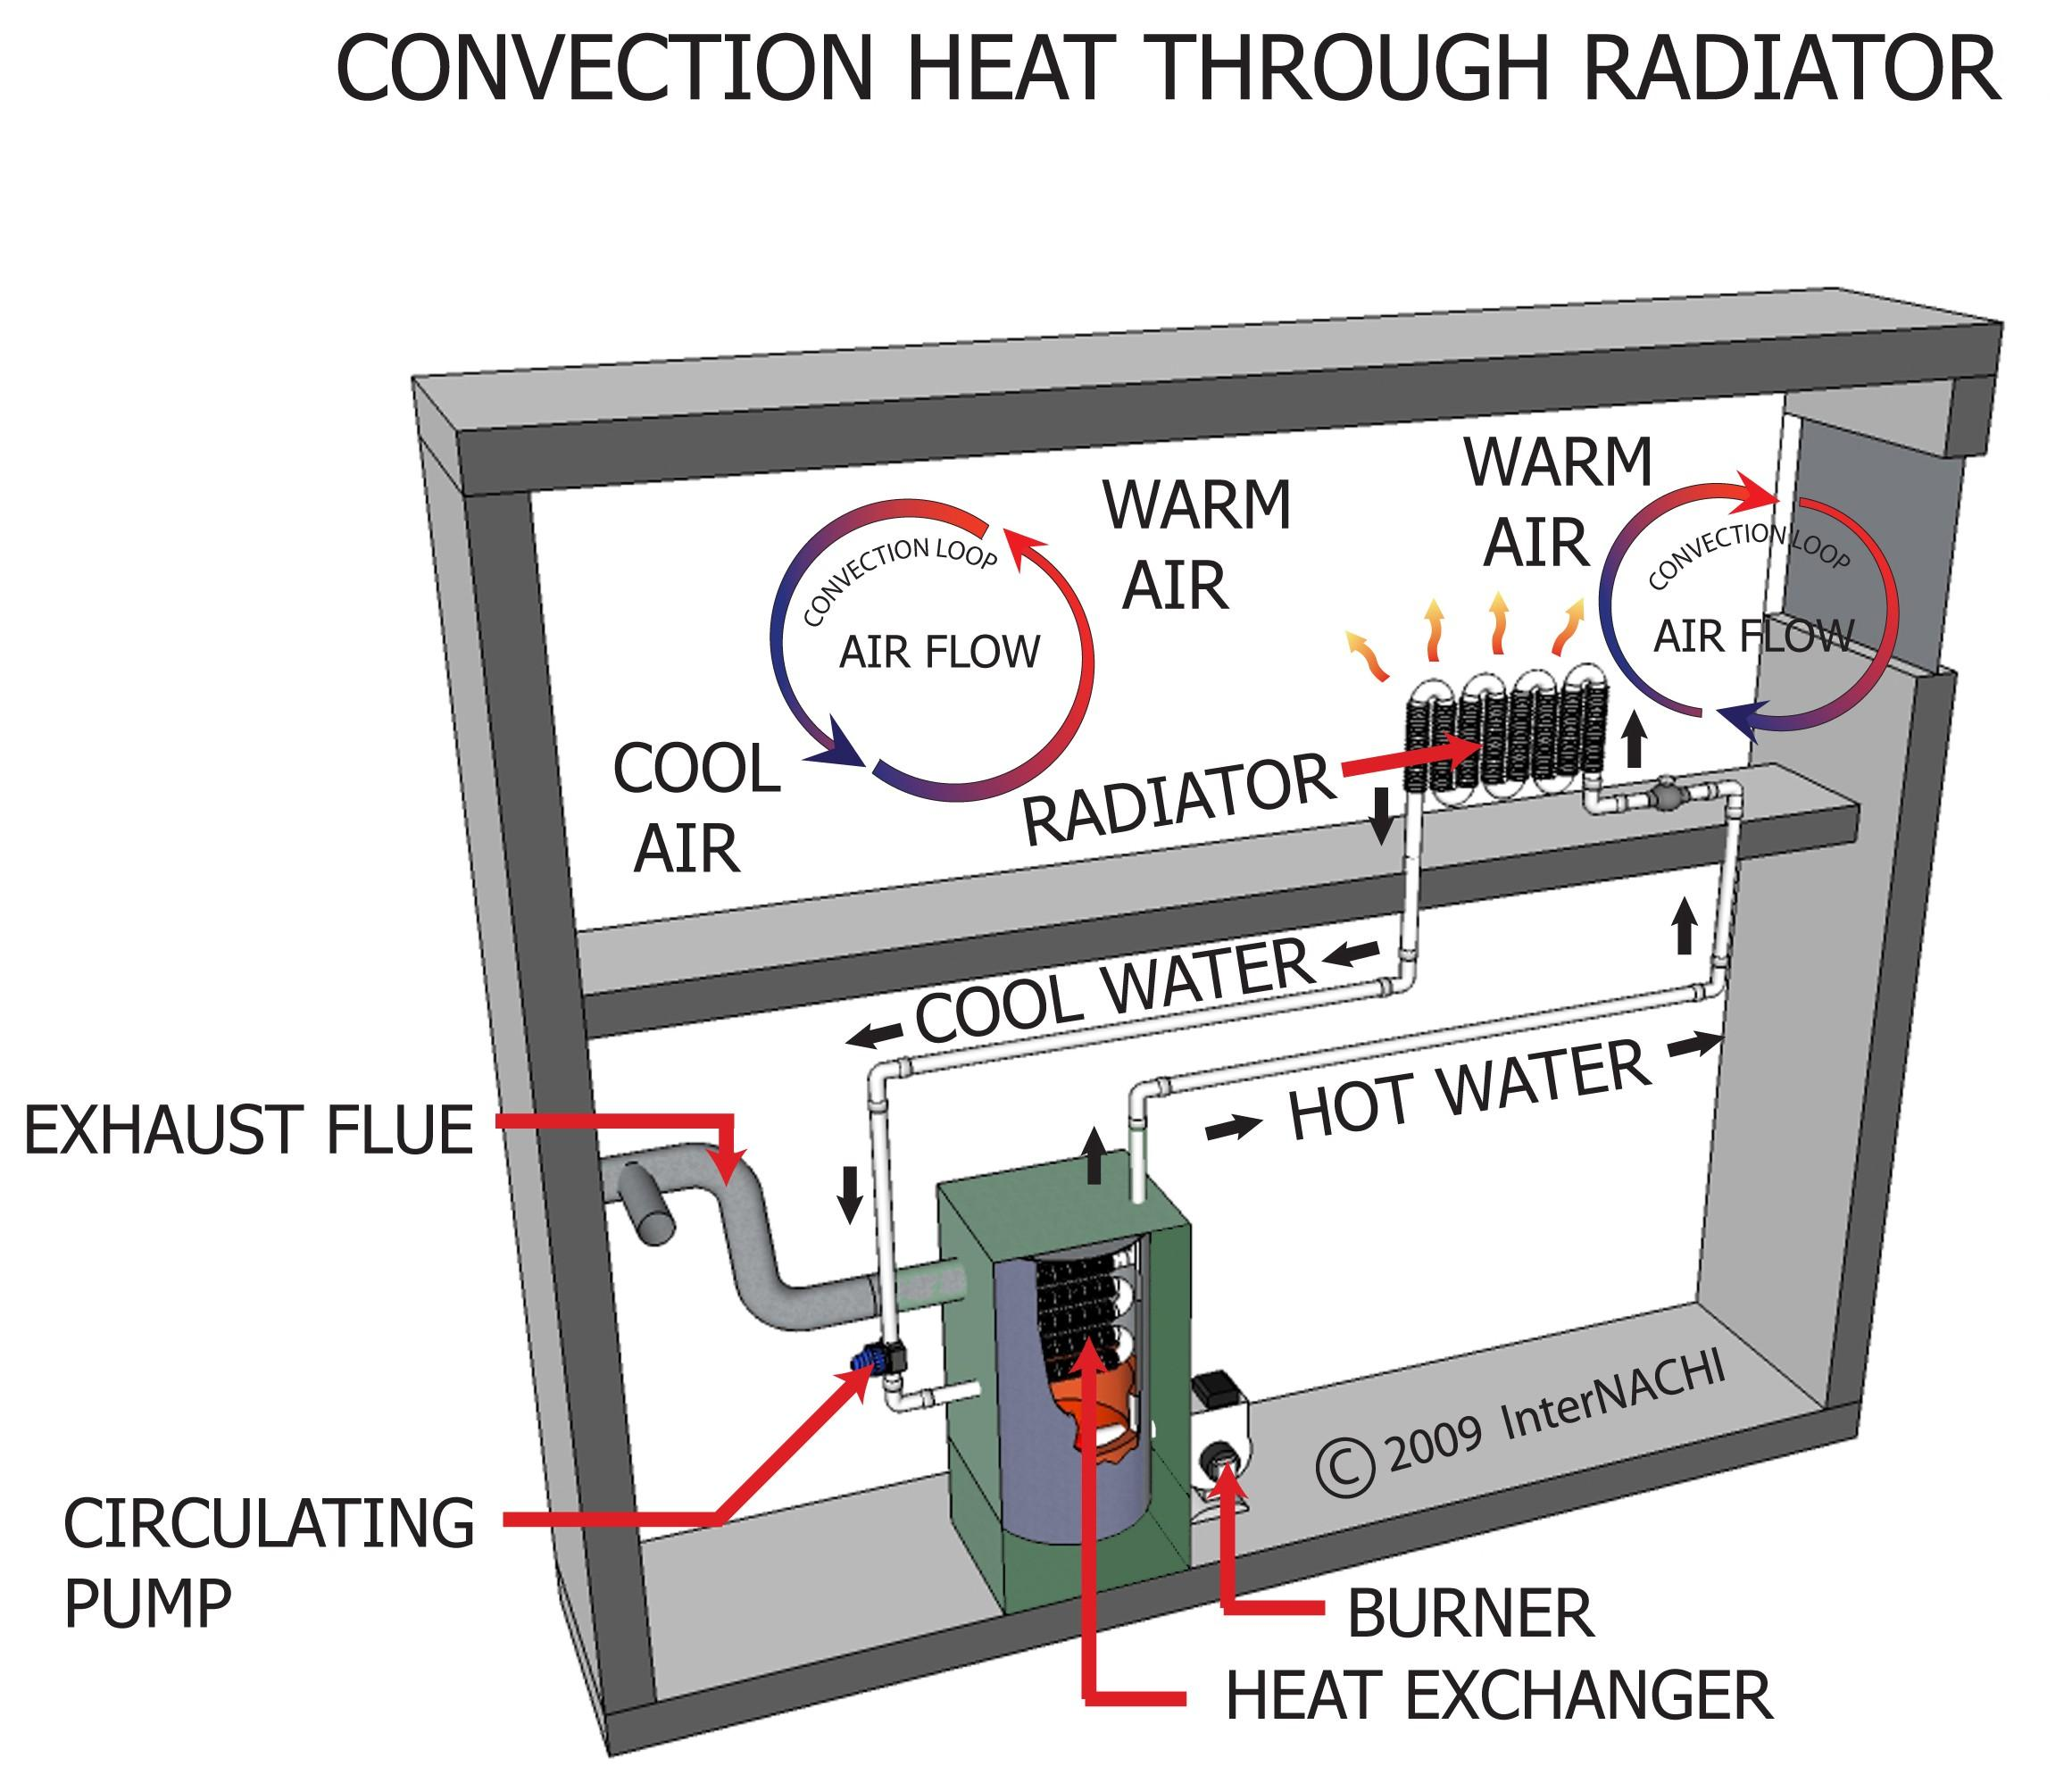 Convection heat through radiator.